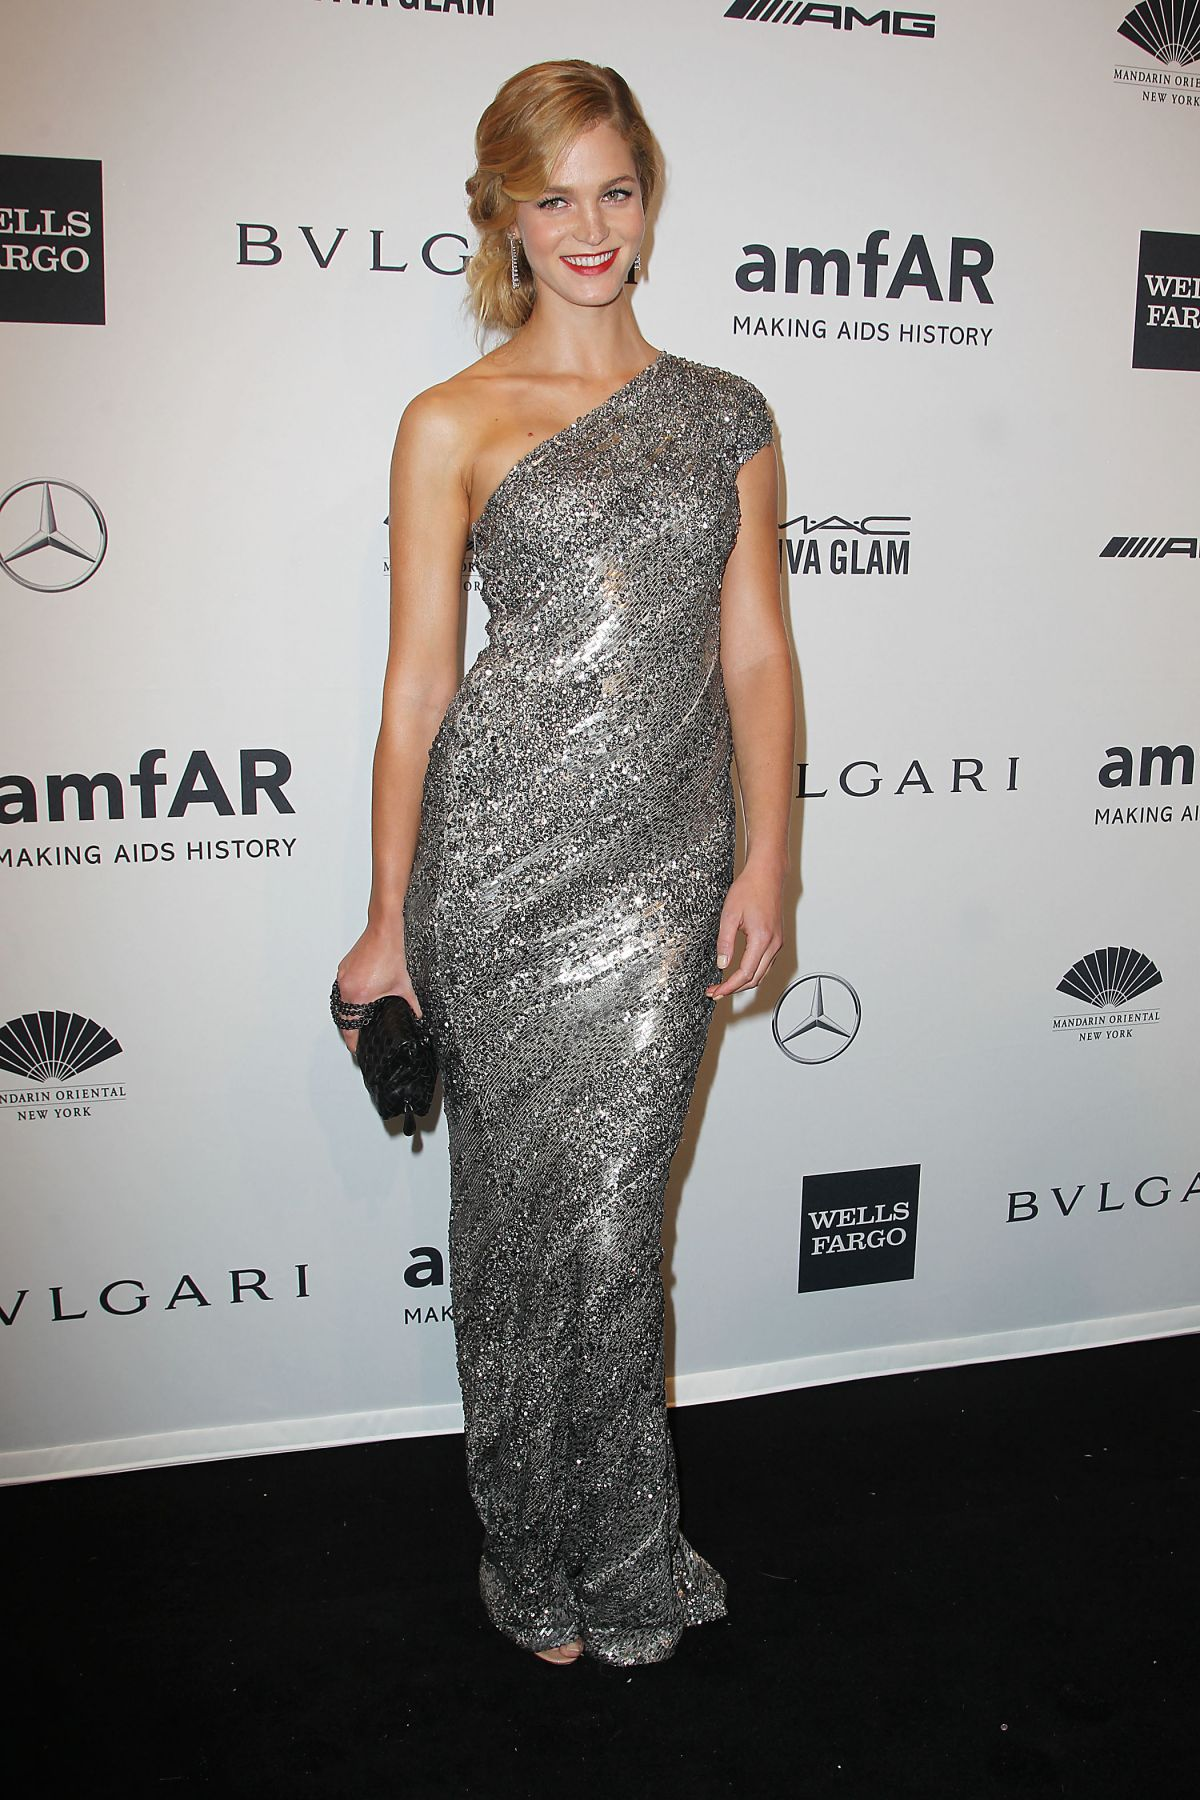 ERIN HEATHERTON at 2014 AMFAR Gala in New York